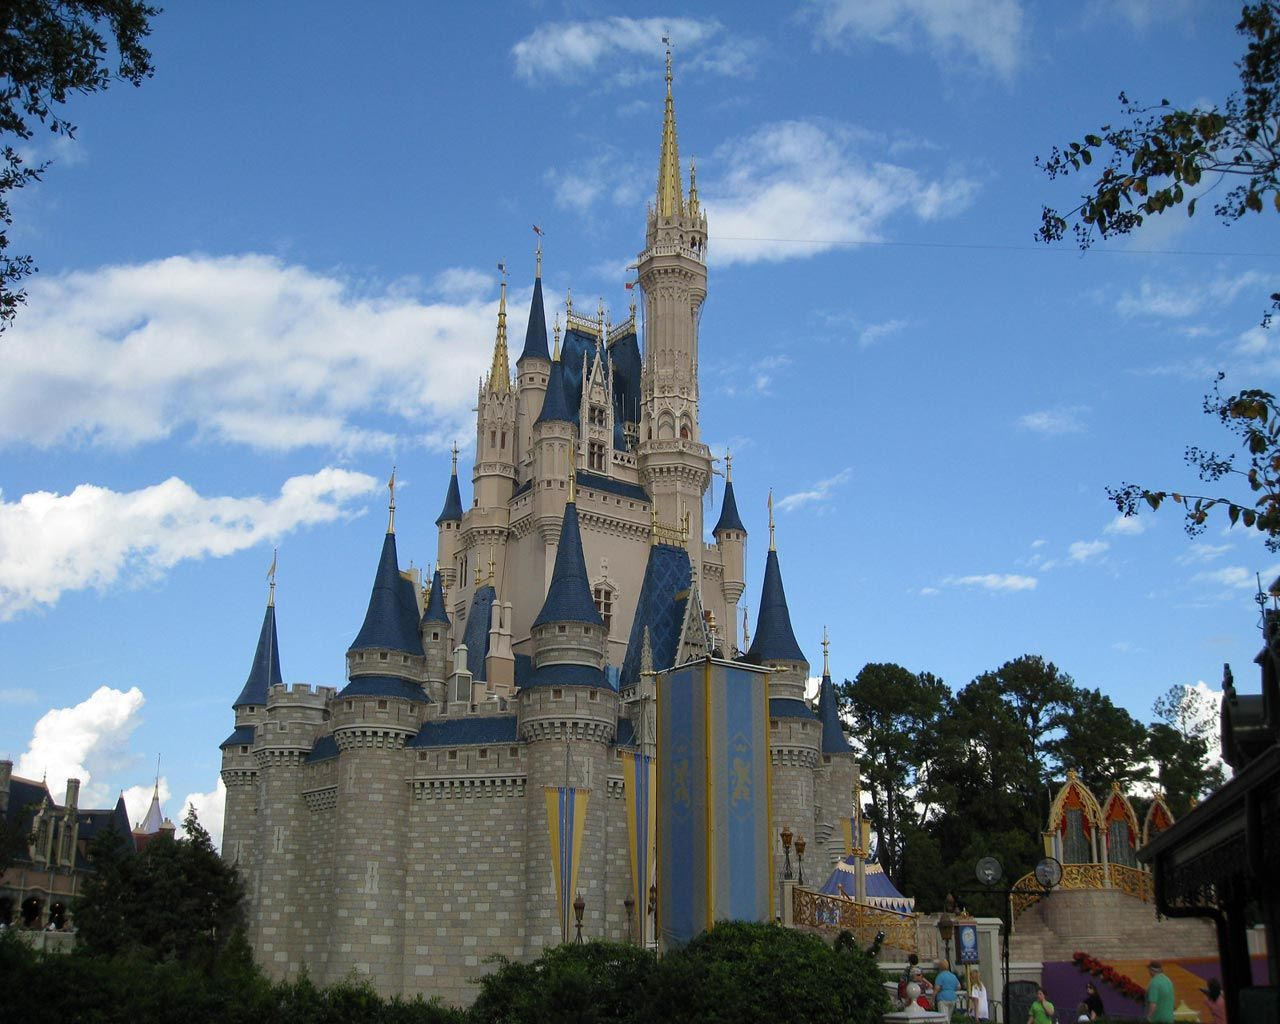 Disney Castle Wallpaper 18 Hd Wallpapers in Cartoons   Imagescicom 1280x1024